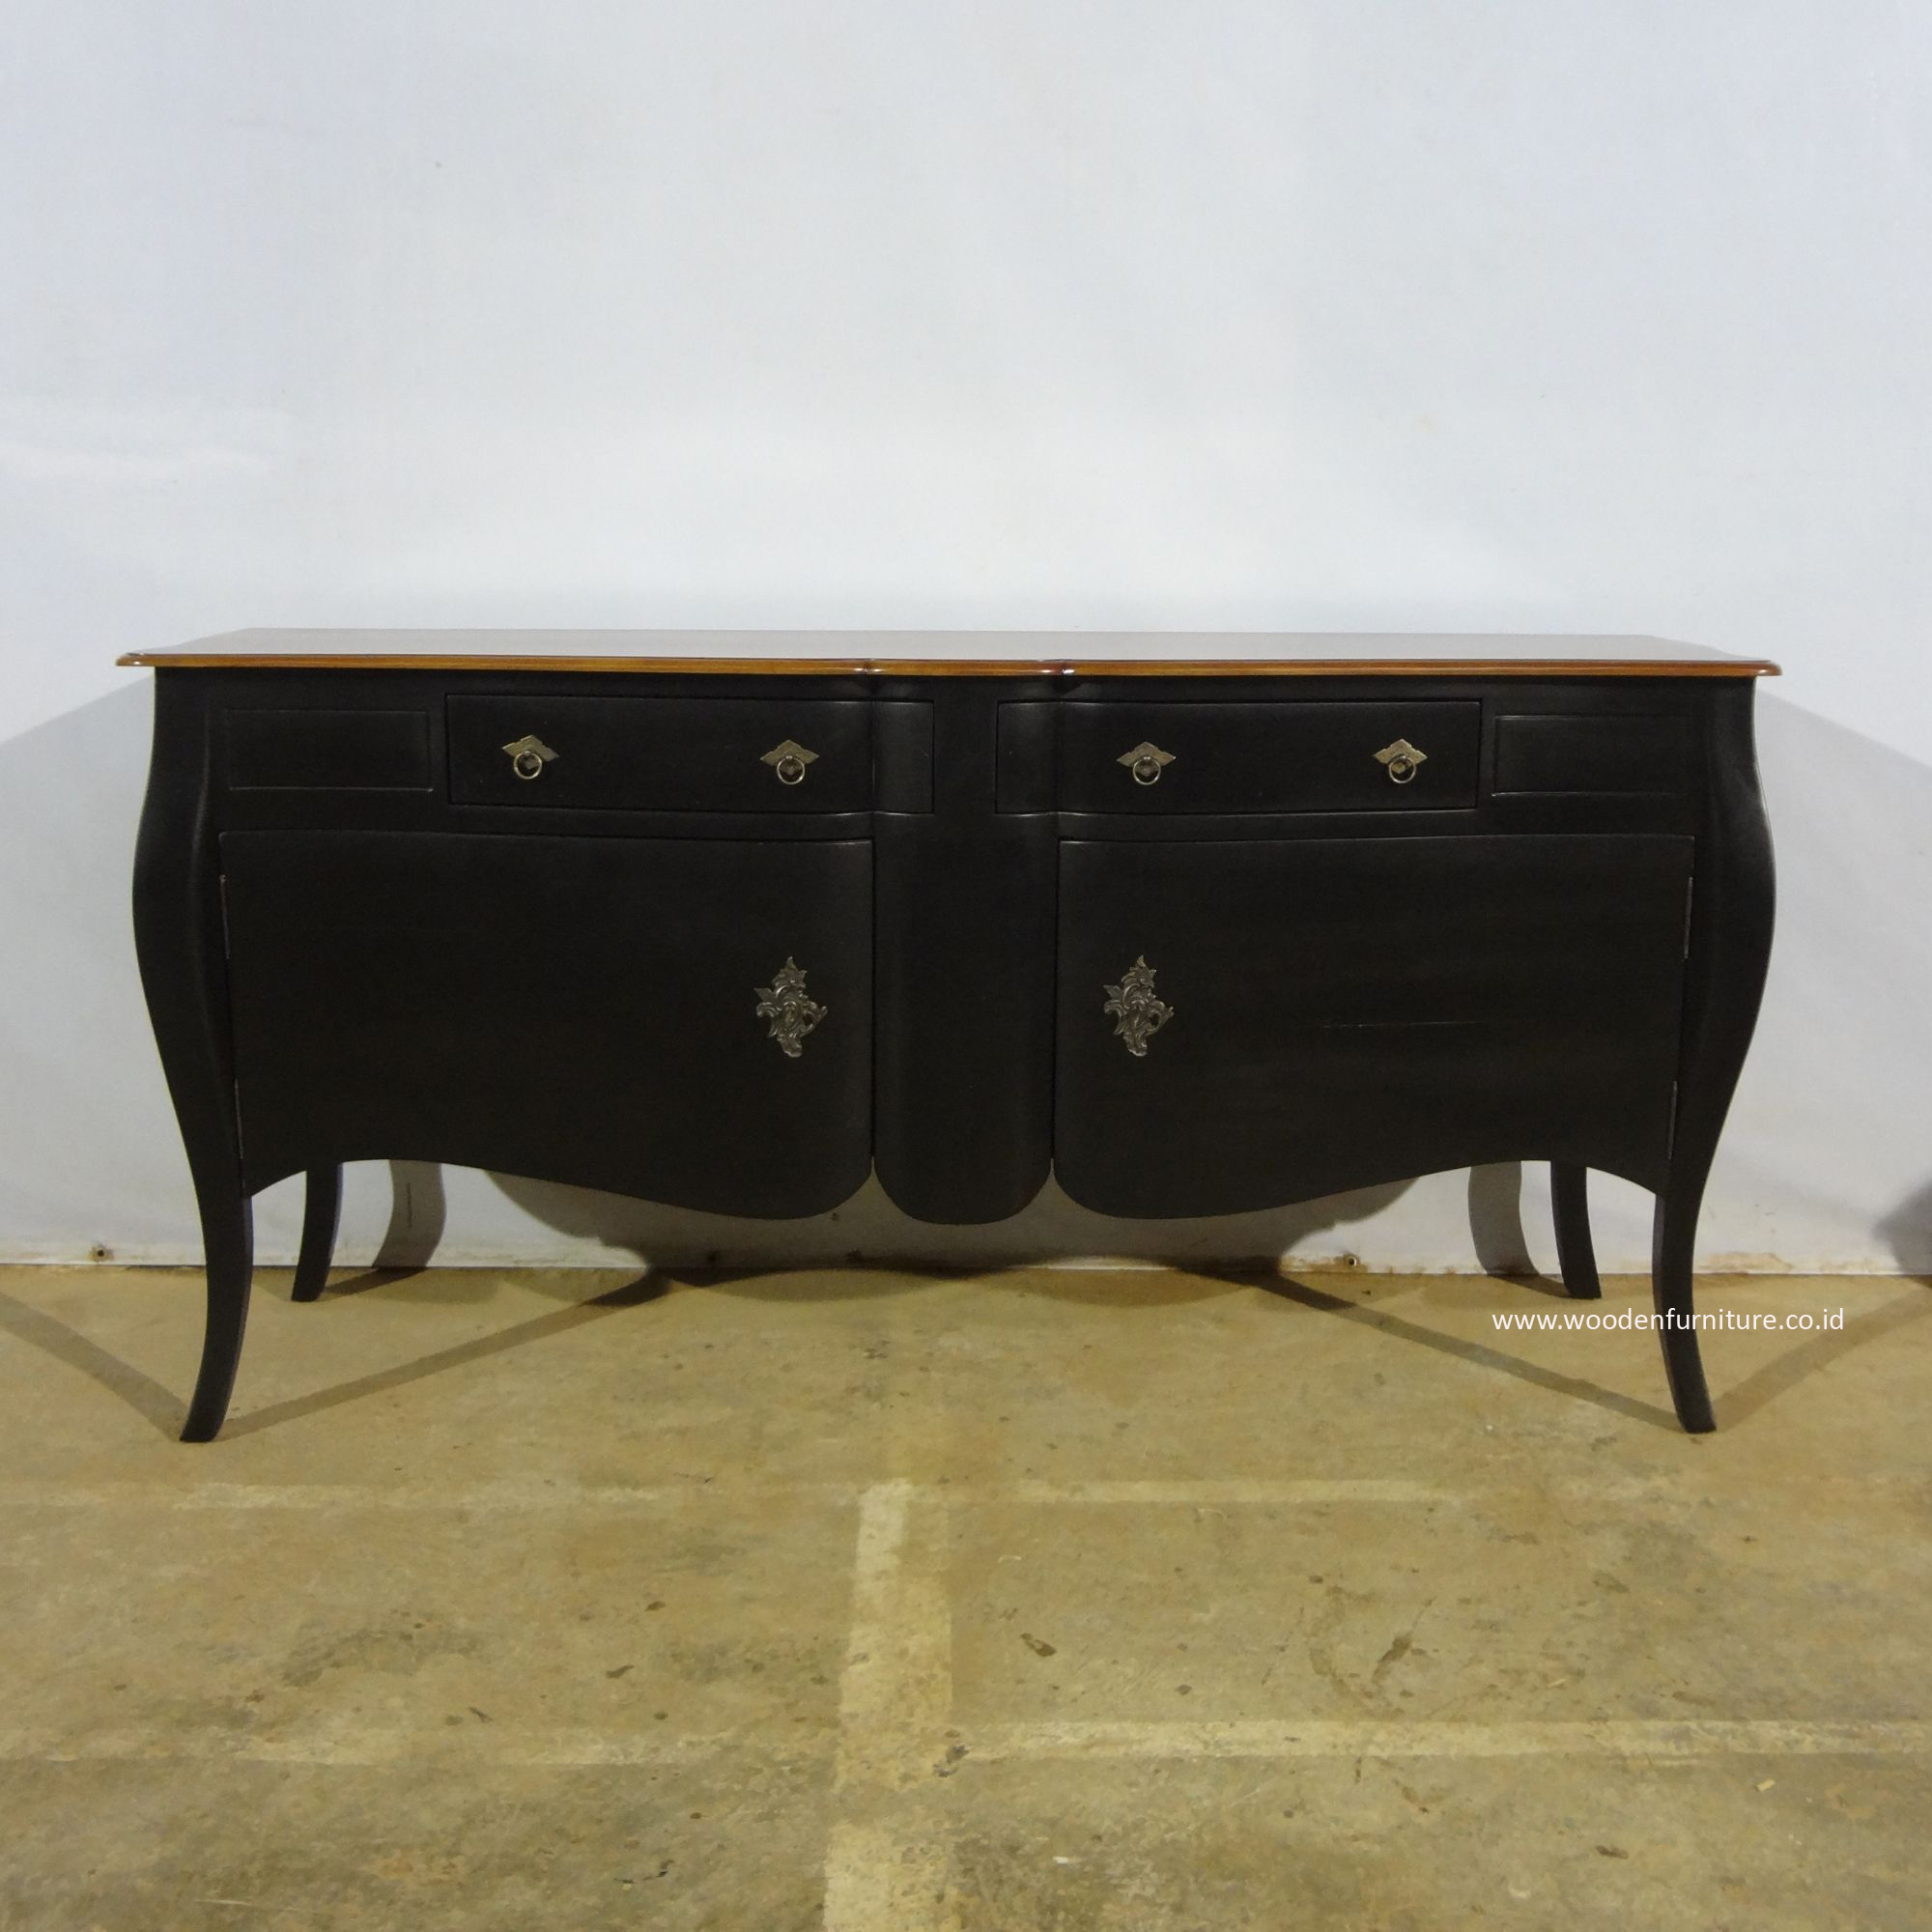 Picture of: Sideboard Buffet Cabinet French Style Furniture Mahogany Painted Furniture Antique Reproduction Wooden Furniture Buy Reproduction French Provincial Furniture Dining Room Furniture Sideboard Product On Alibaba Com